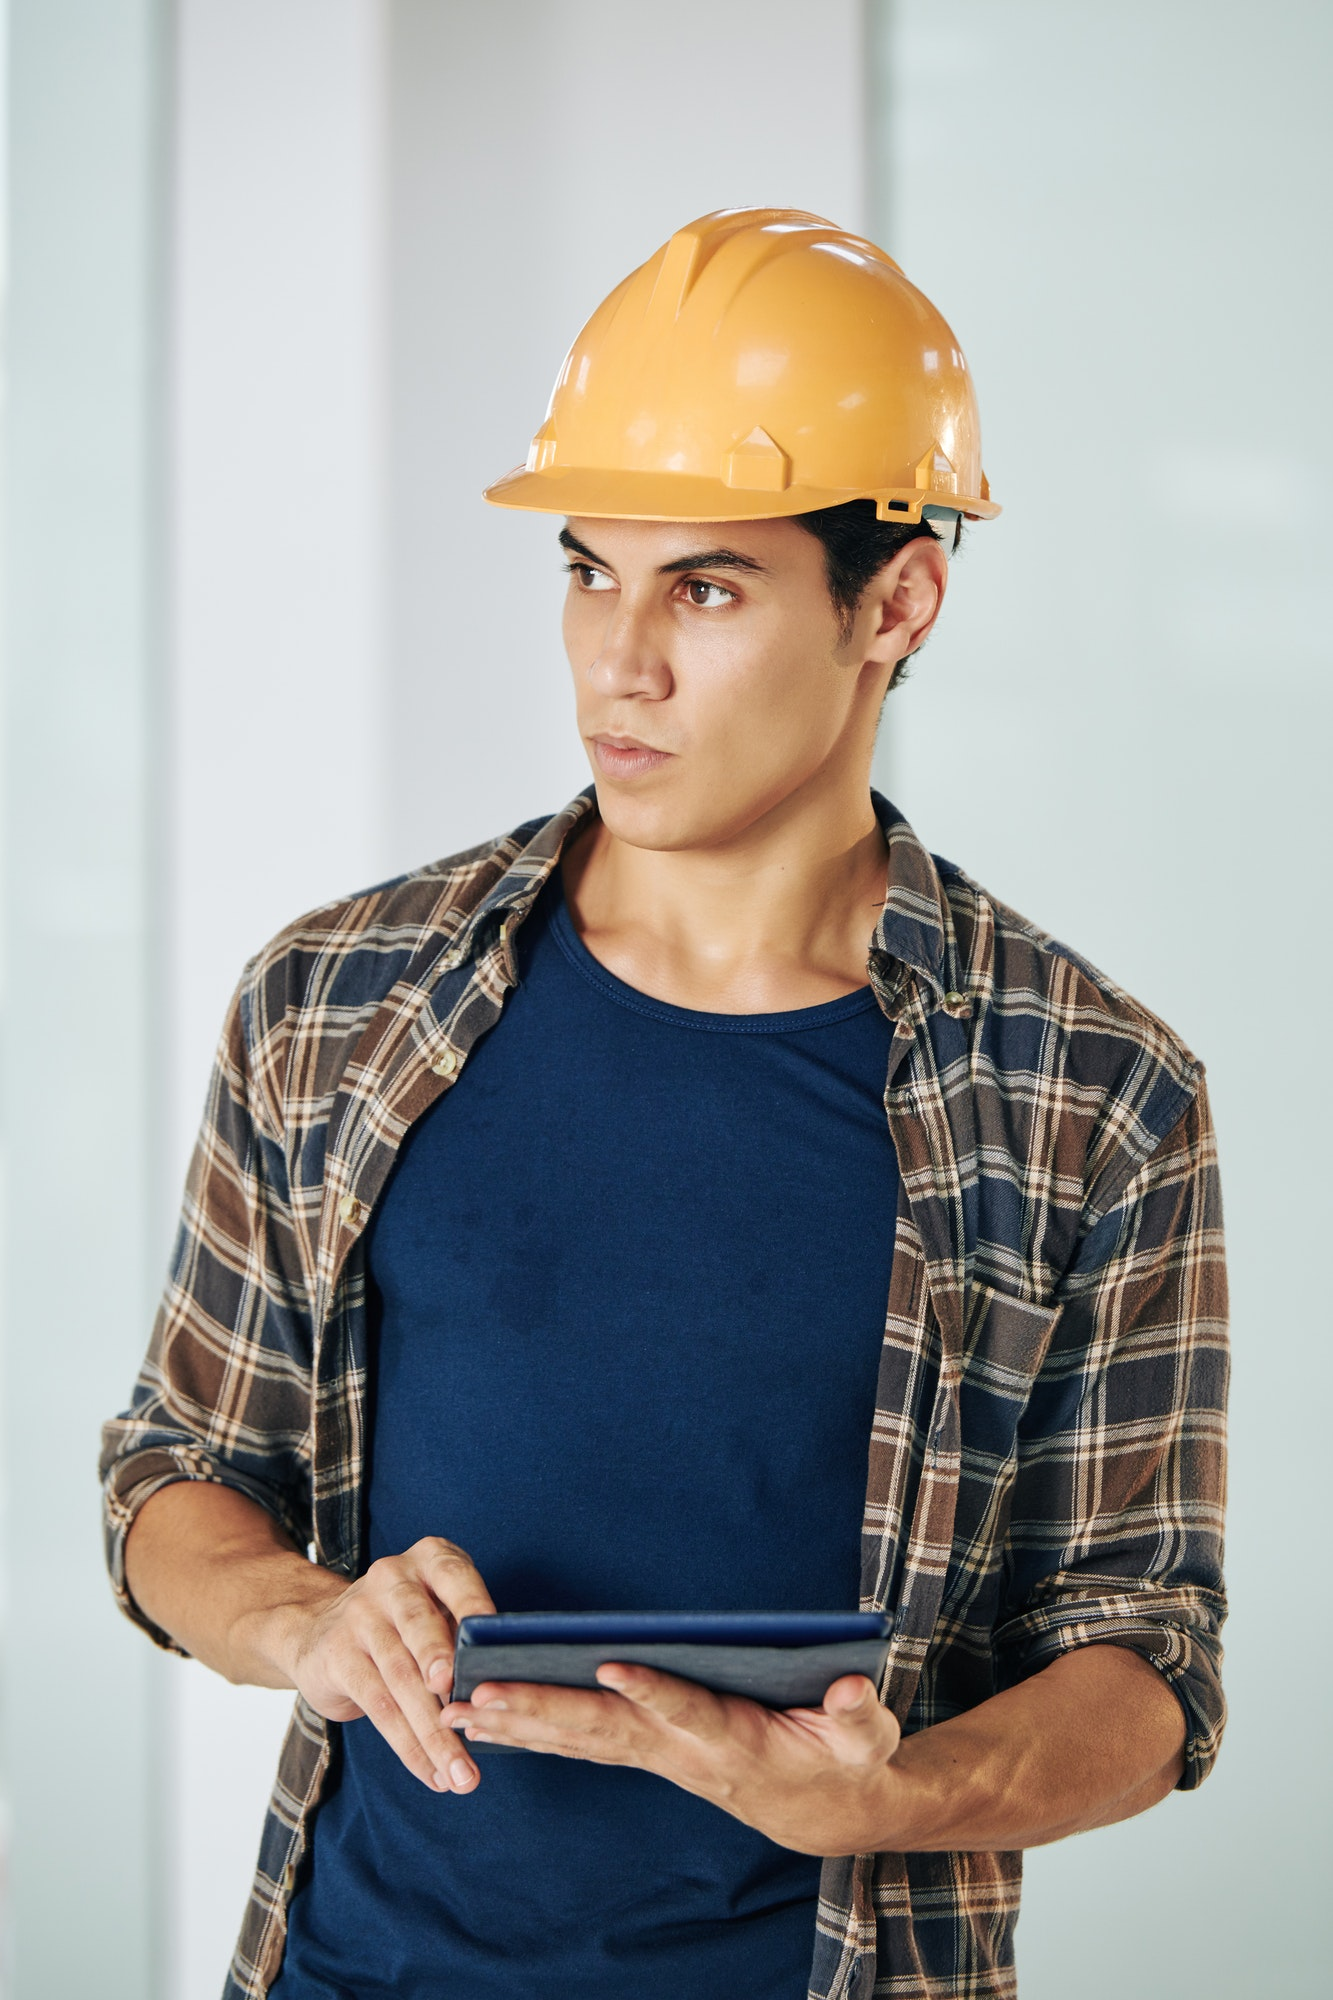 Civil engineer with digital tablet